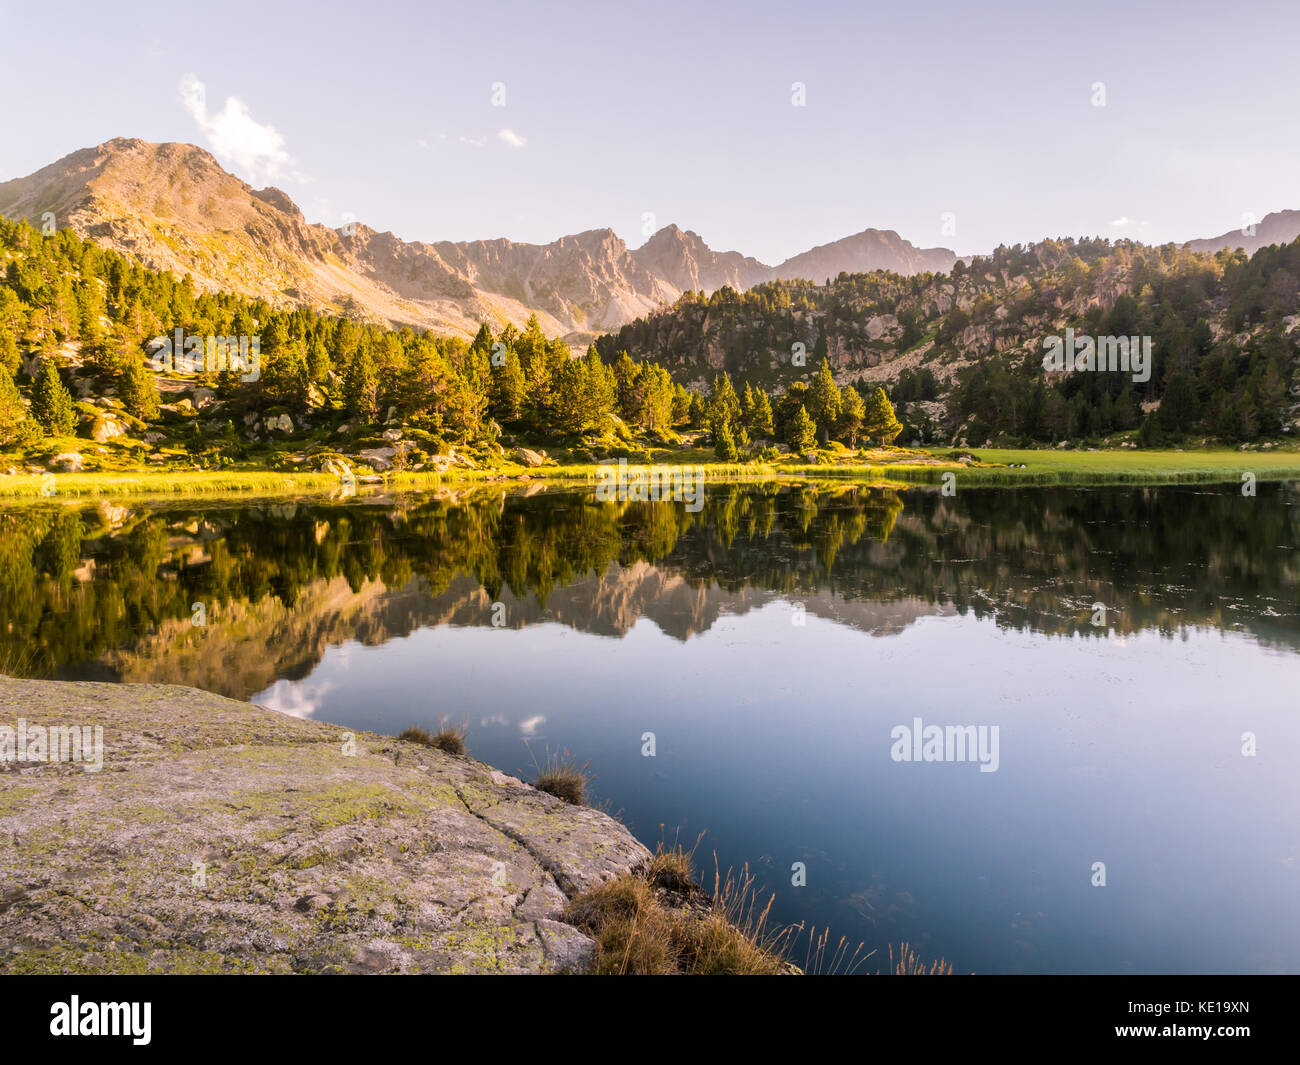 Estany Primer lake in Andorra, Pyrenees Mountains. - Stock Image